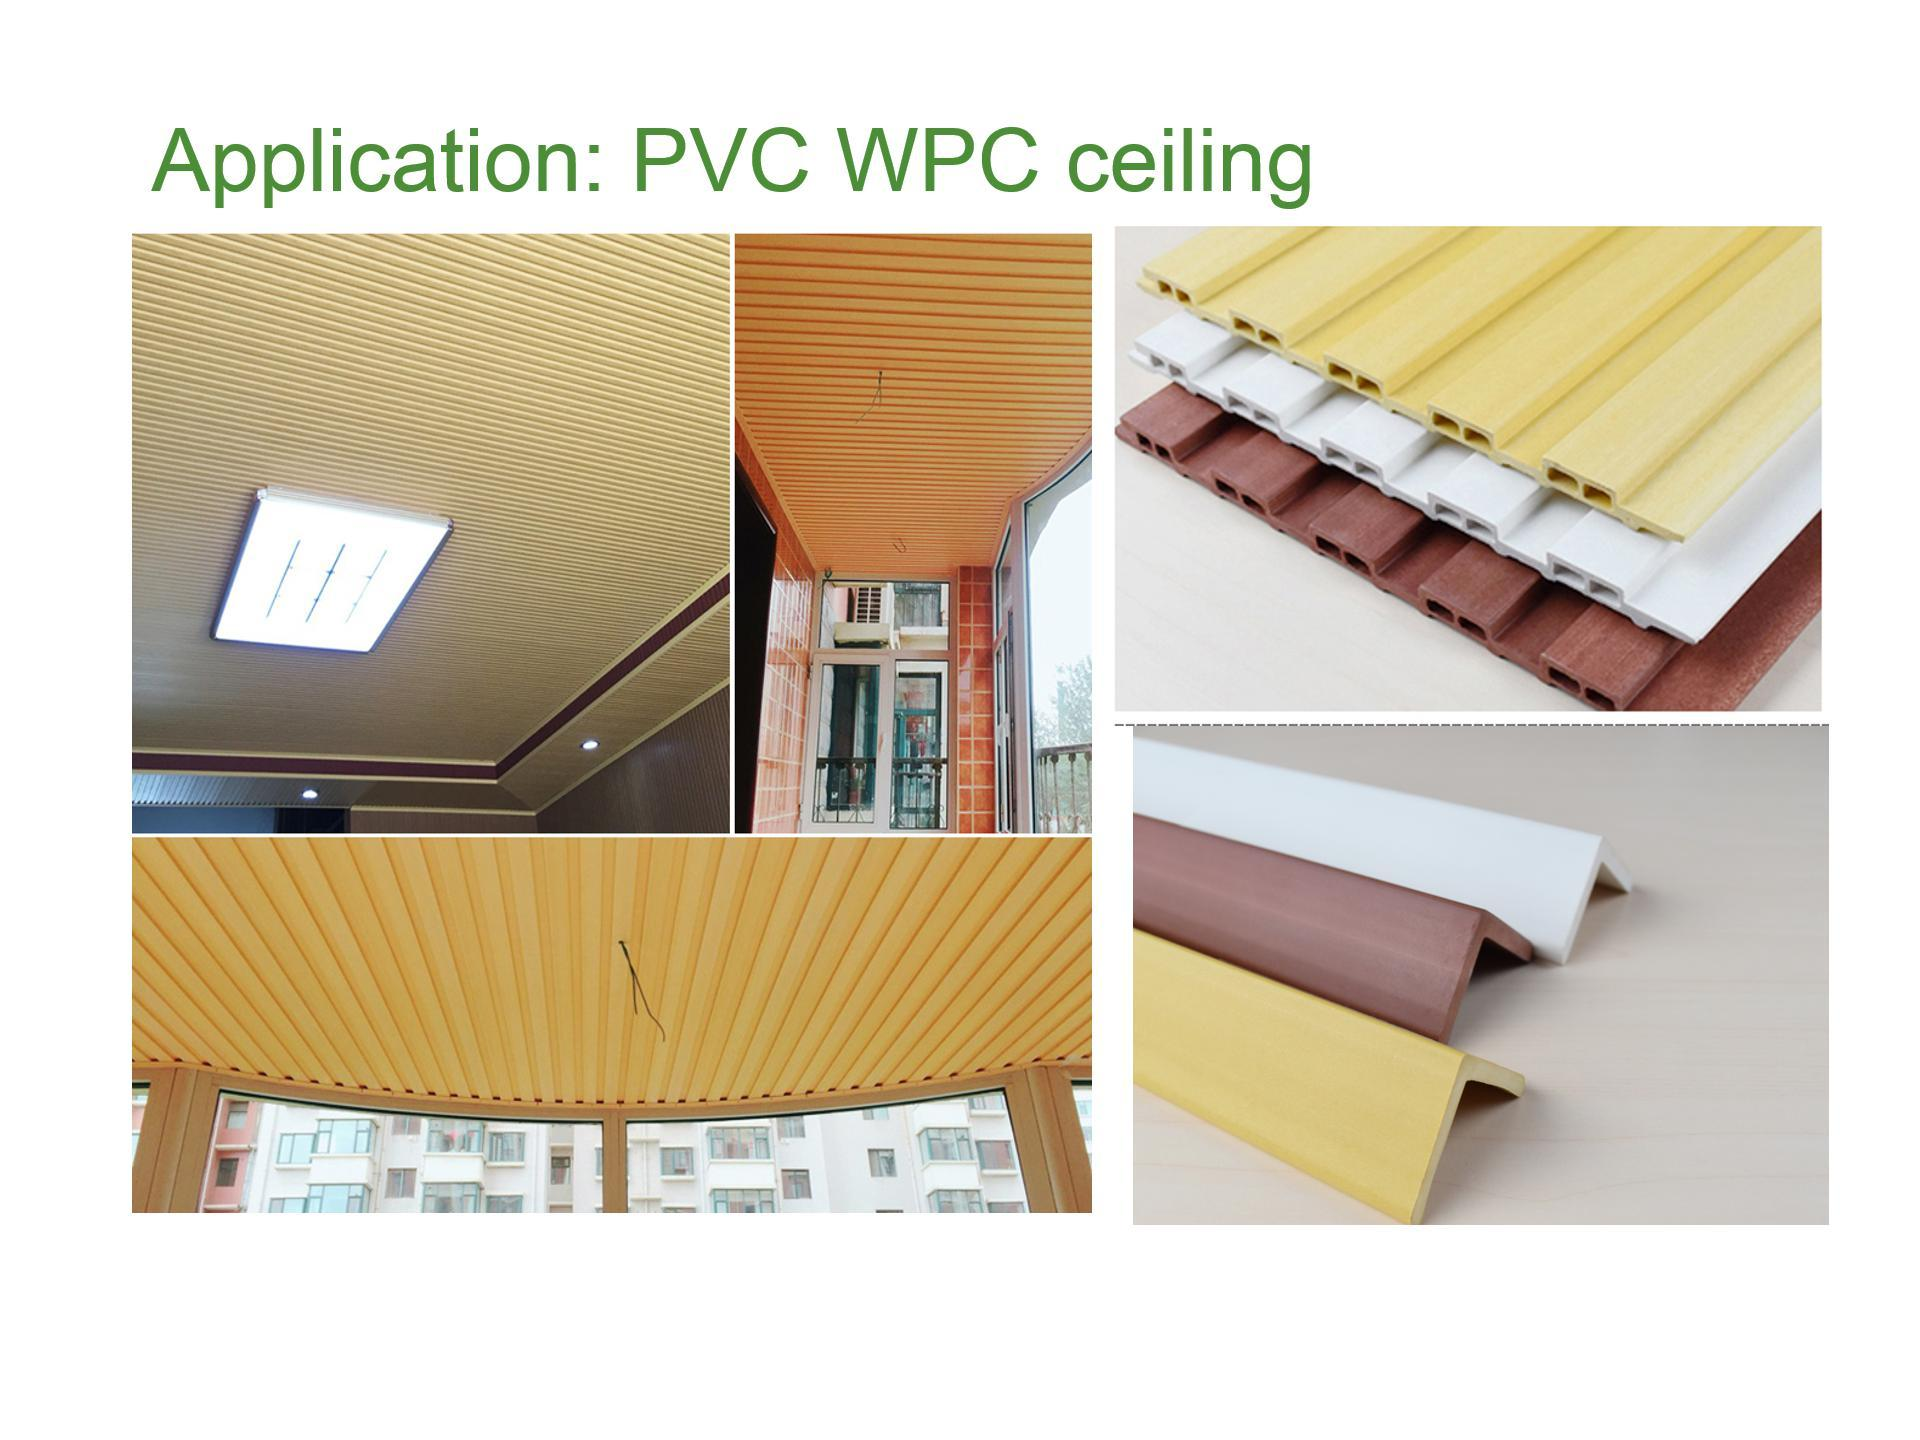 Laminated WPC wall panel installed